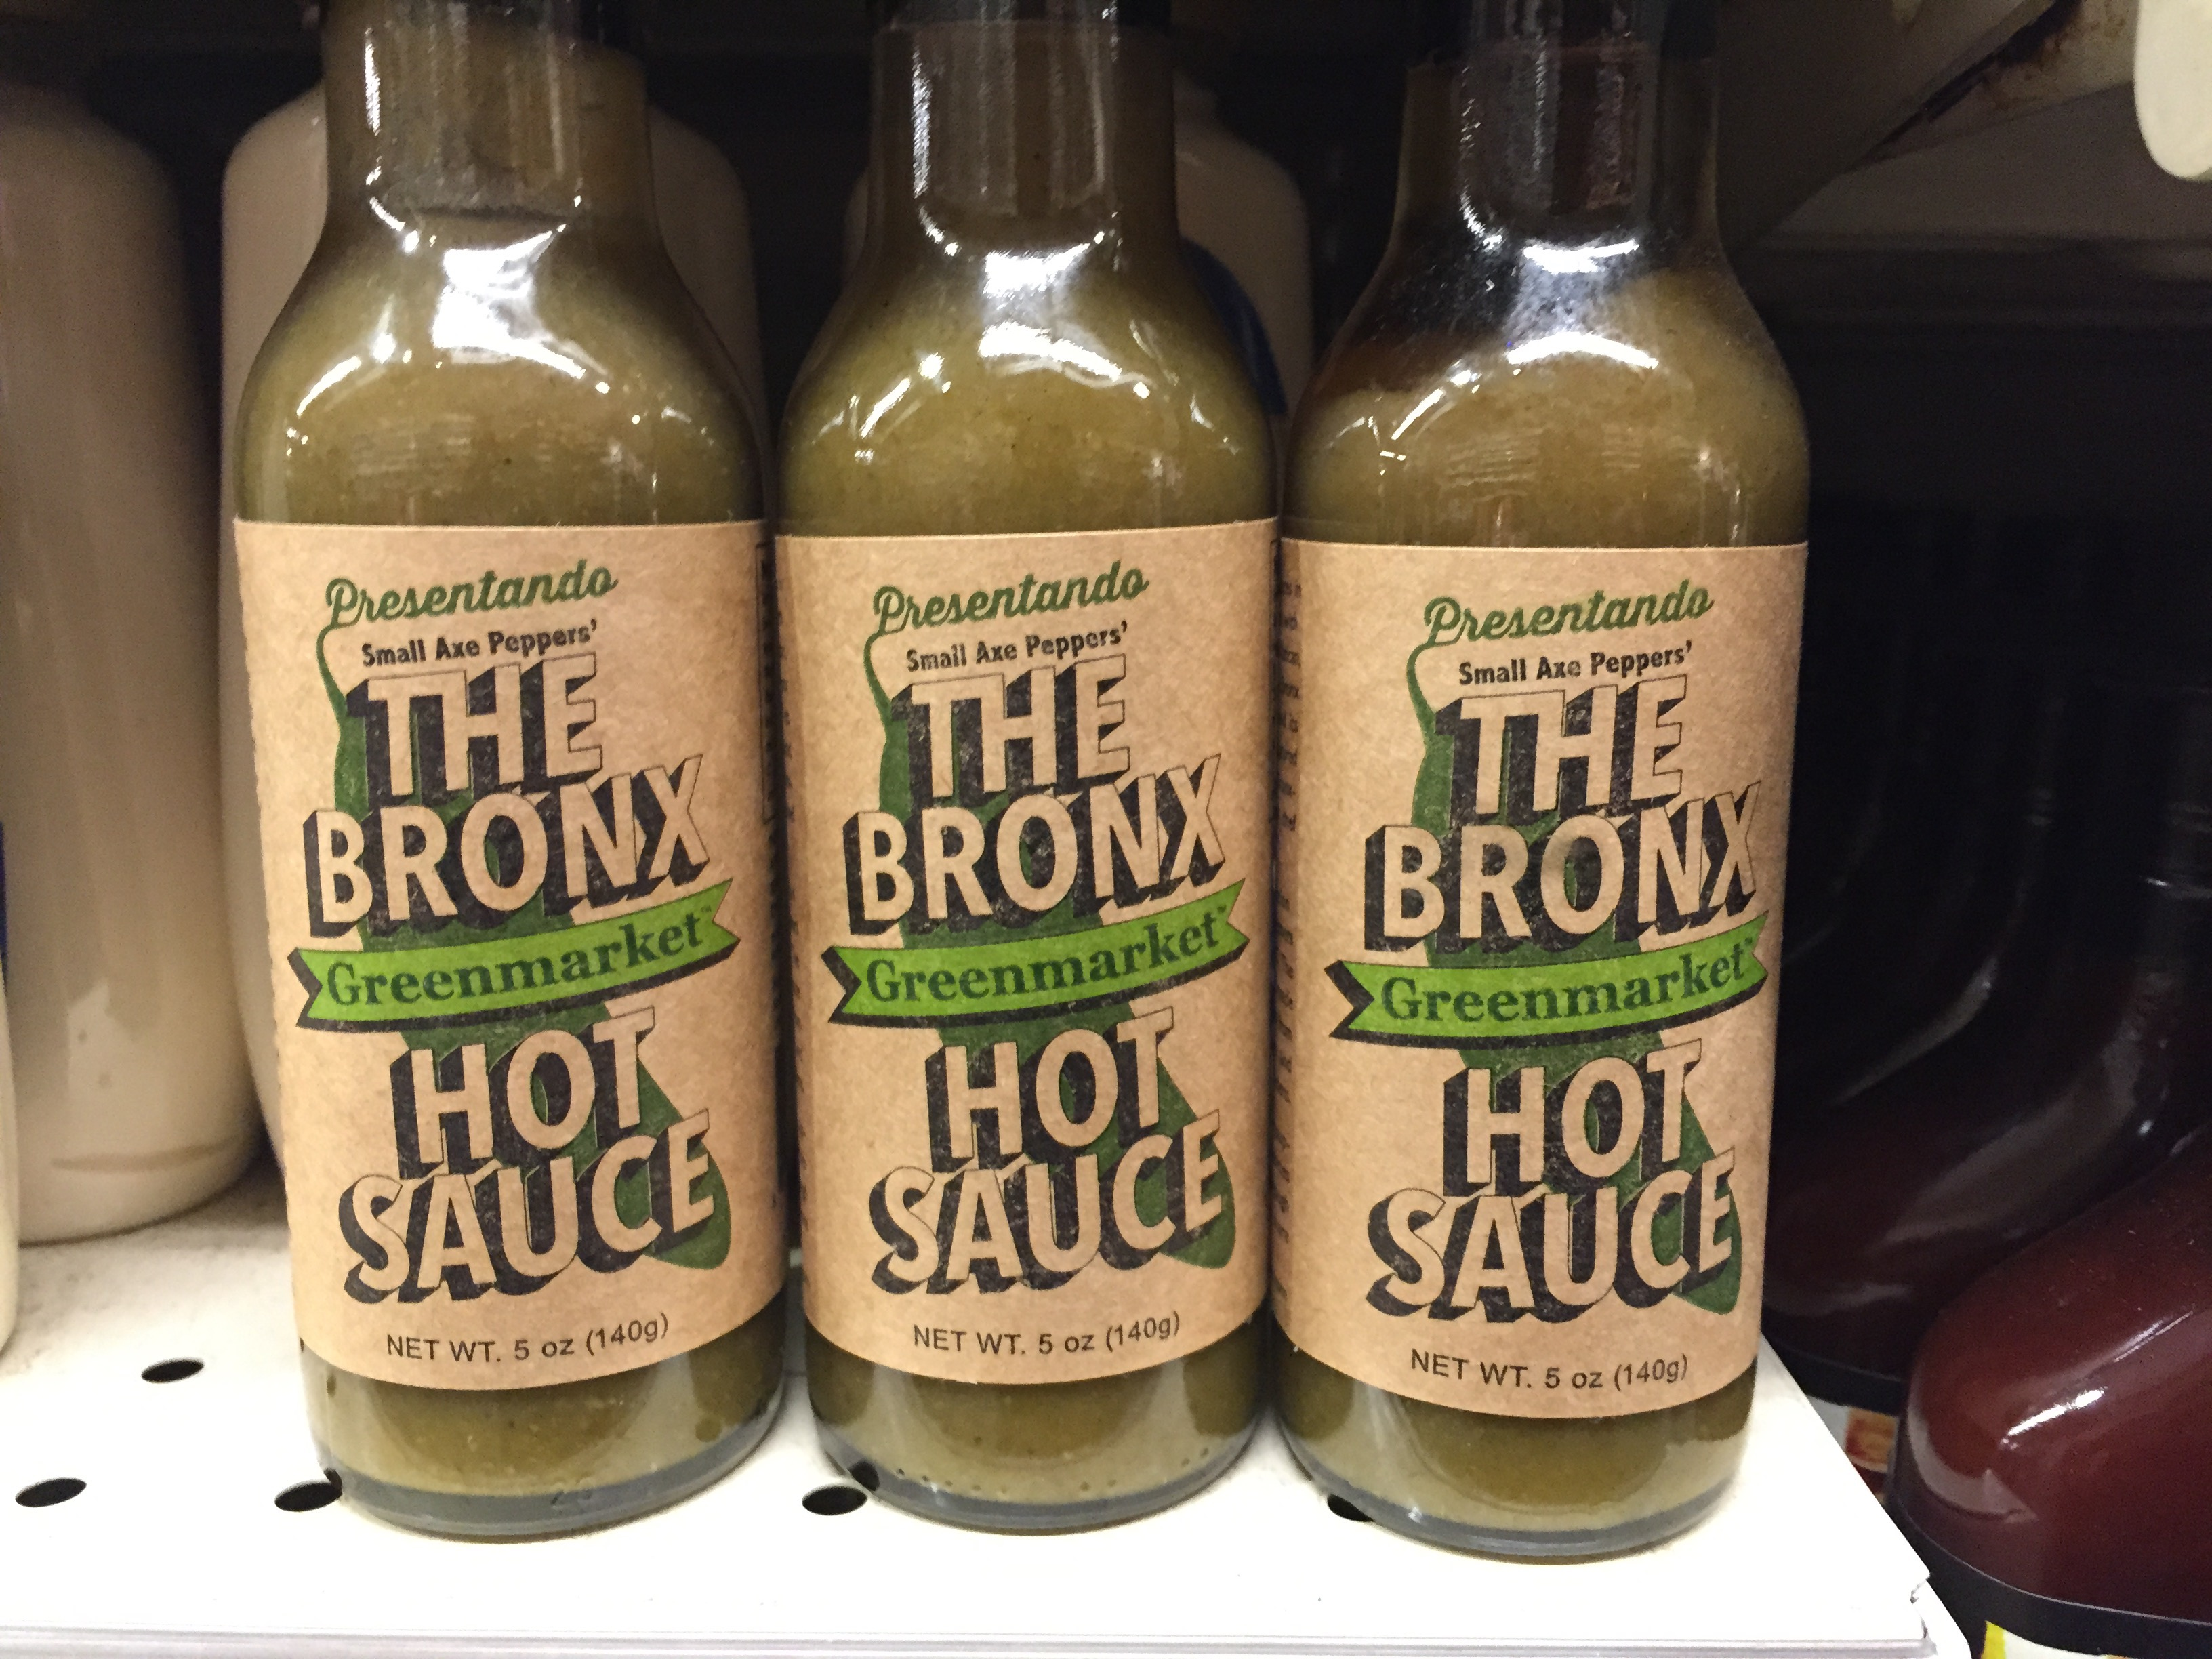 The Bronx Hot Sauce.